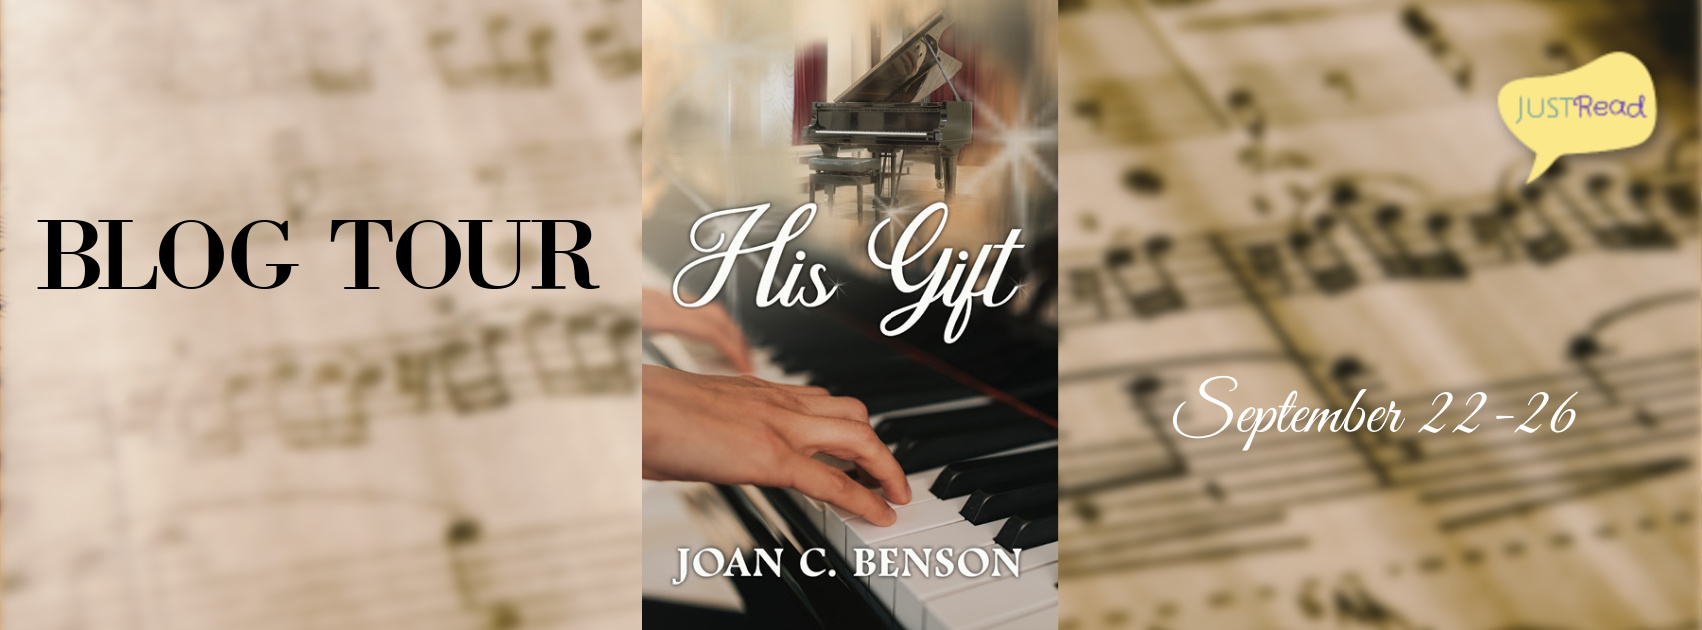 Welcome to the His Gift Blog Tour & Giveaway!